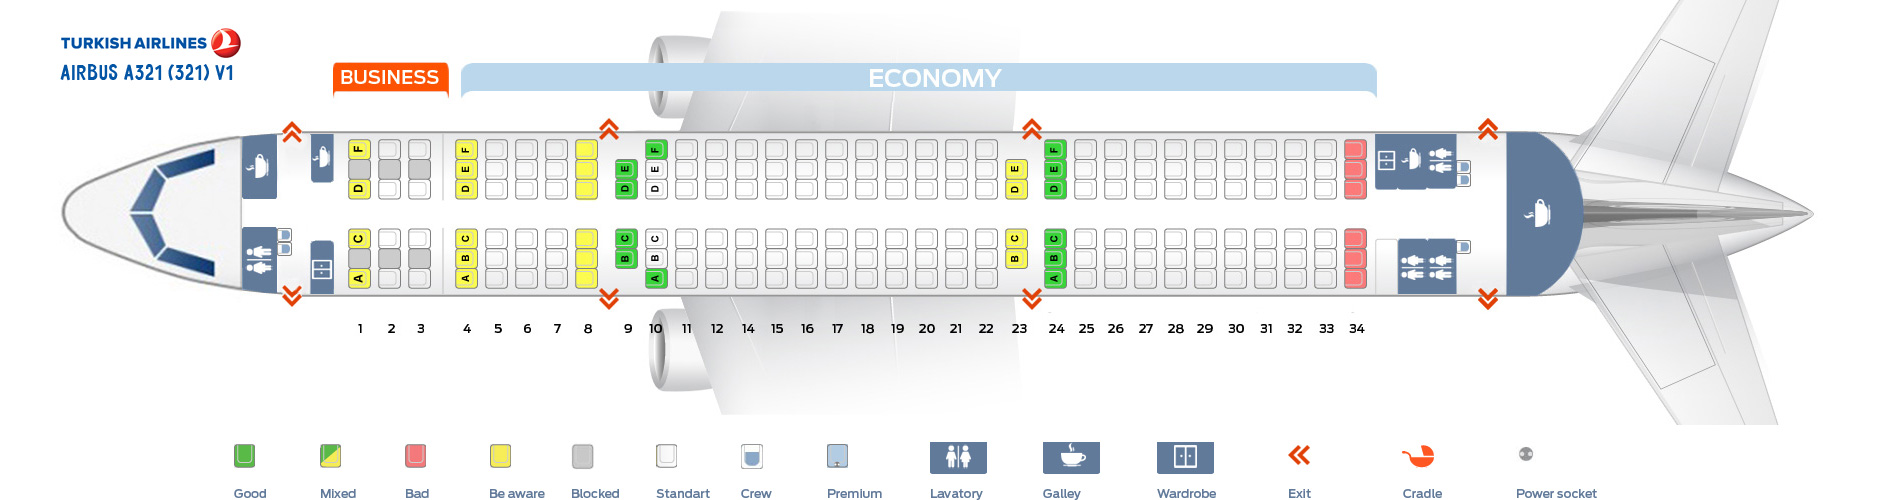 Seat Map Airbus A321-200 V1 Turkish Airlines